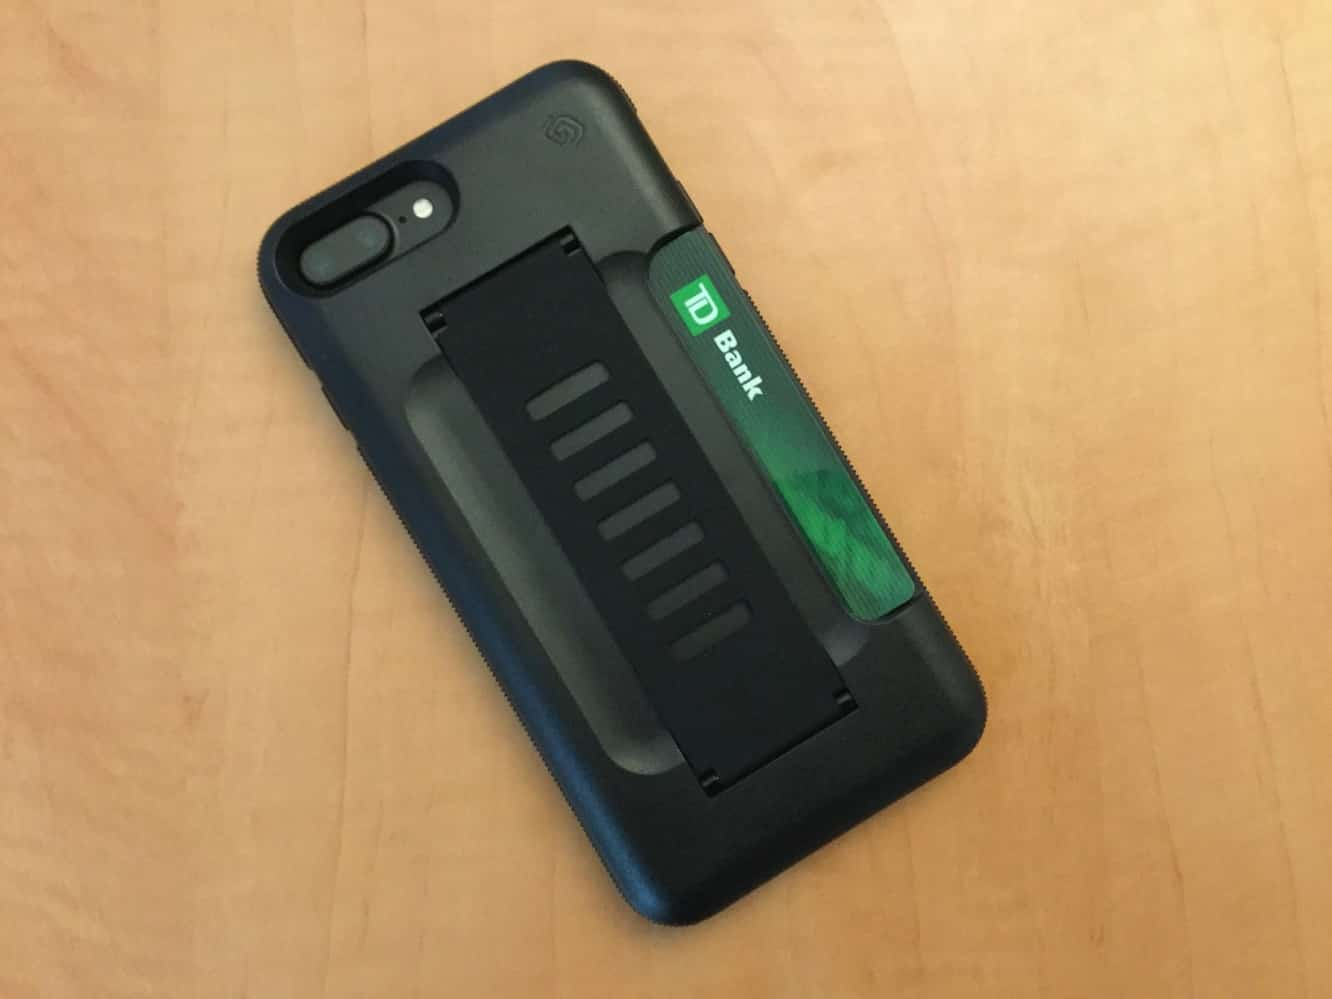 GettaGrip Grip2u Boss for iPhone 7 and iPhone 7 Plus